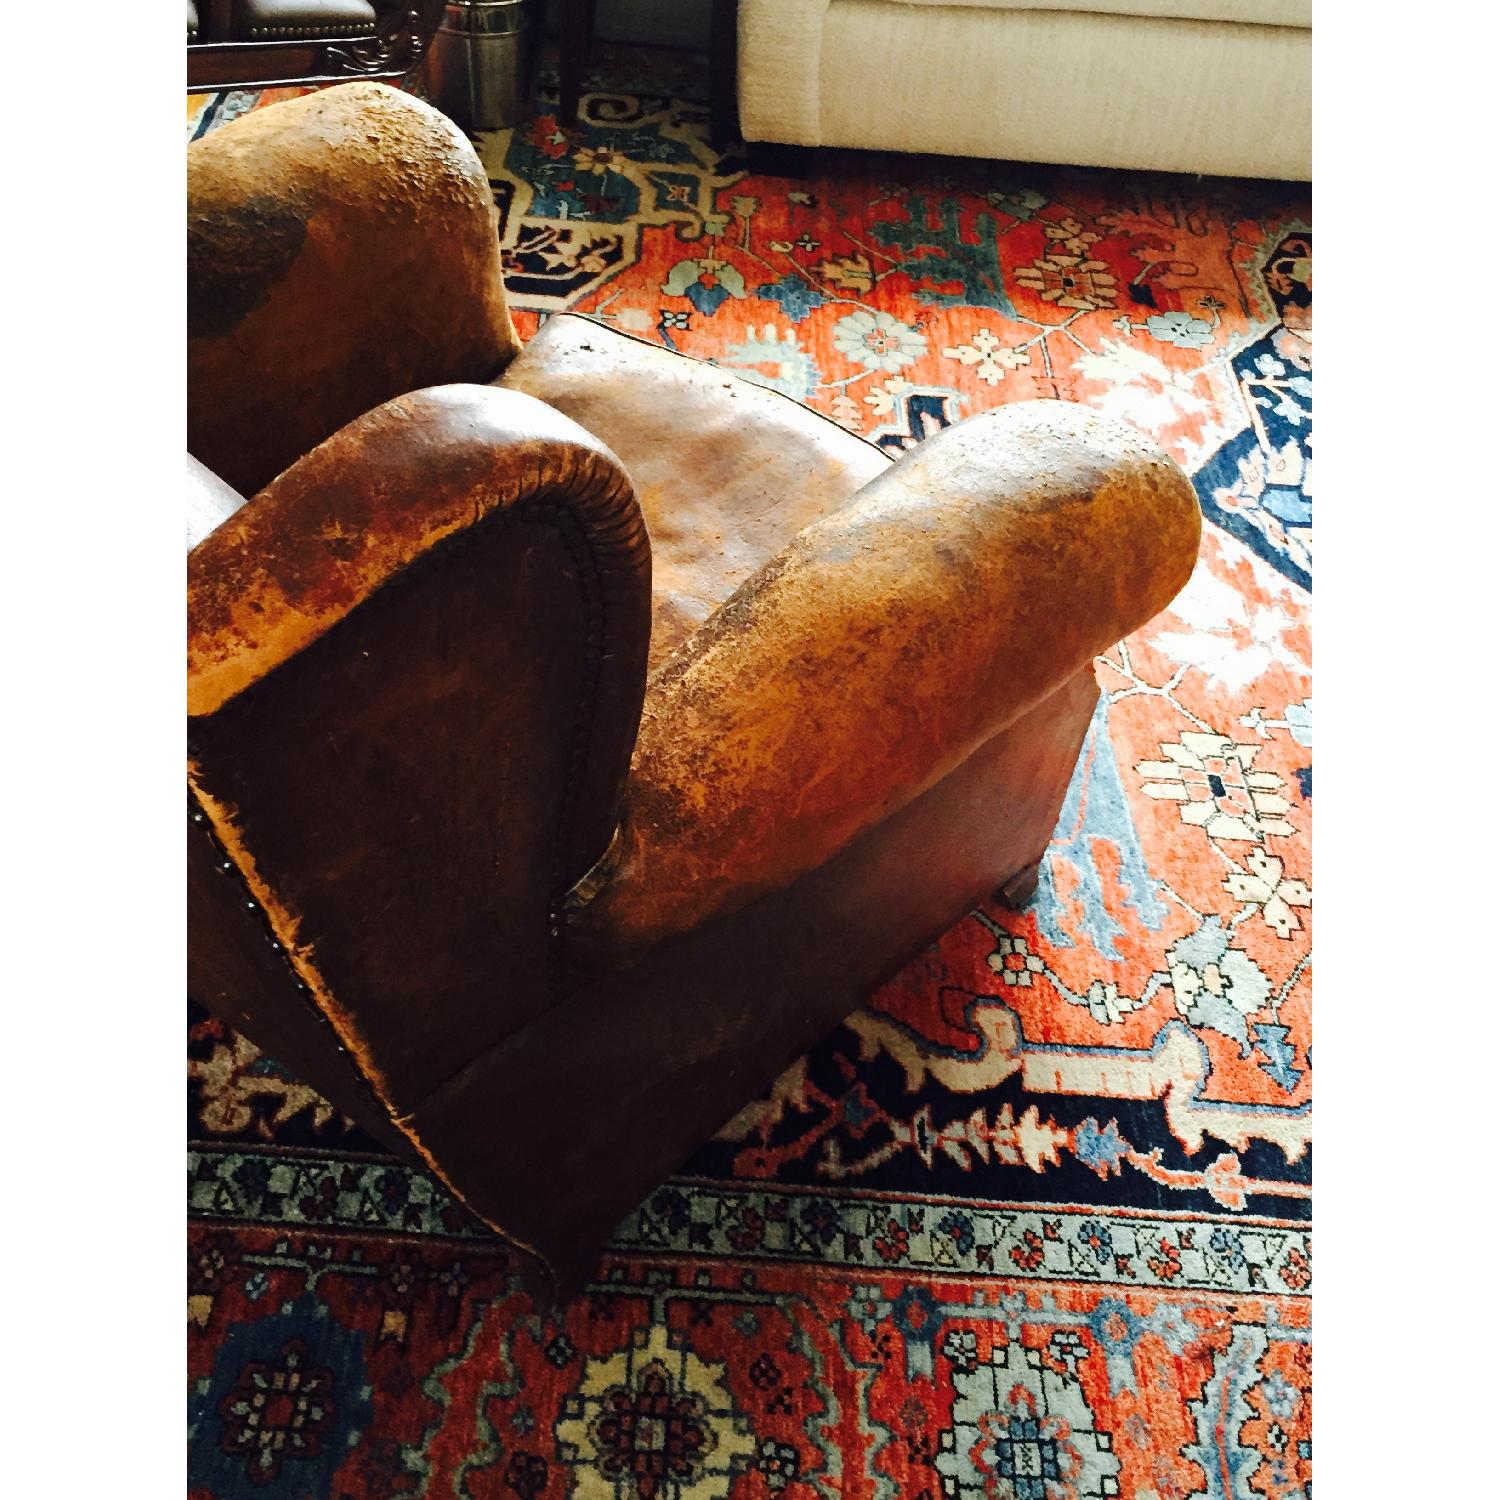 ABC Carpet & Home Woven Legends Turkish Rug - image-6